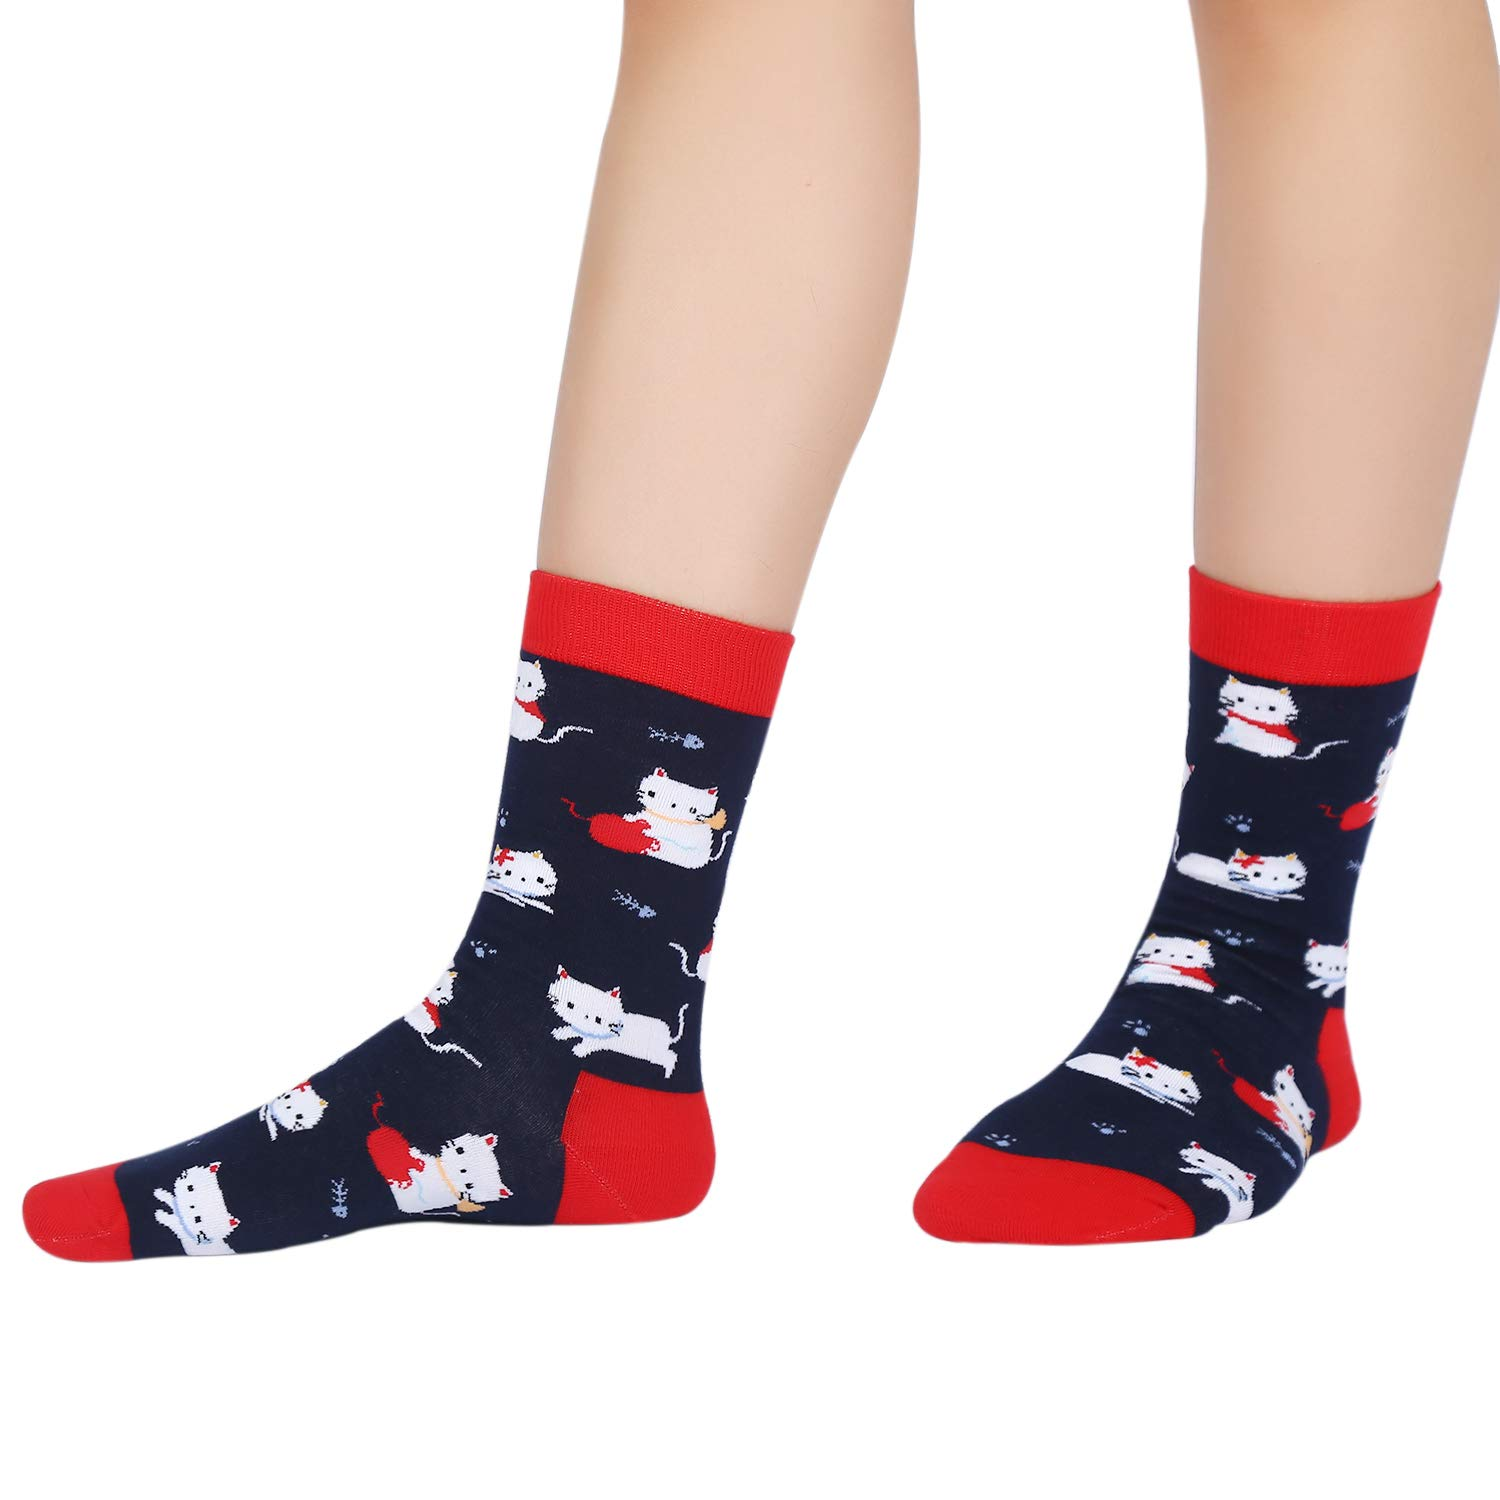 Womens Novelty Crew Socks Crazy Funny Dogs Cats Casual Cute Animal Cotton Socks